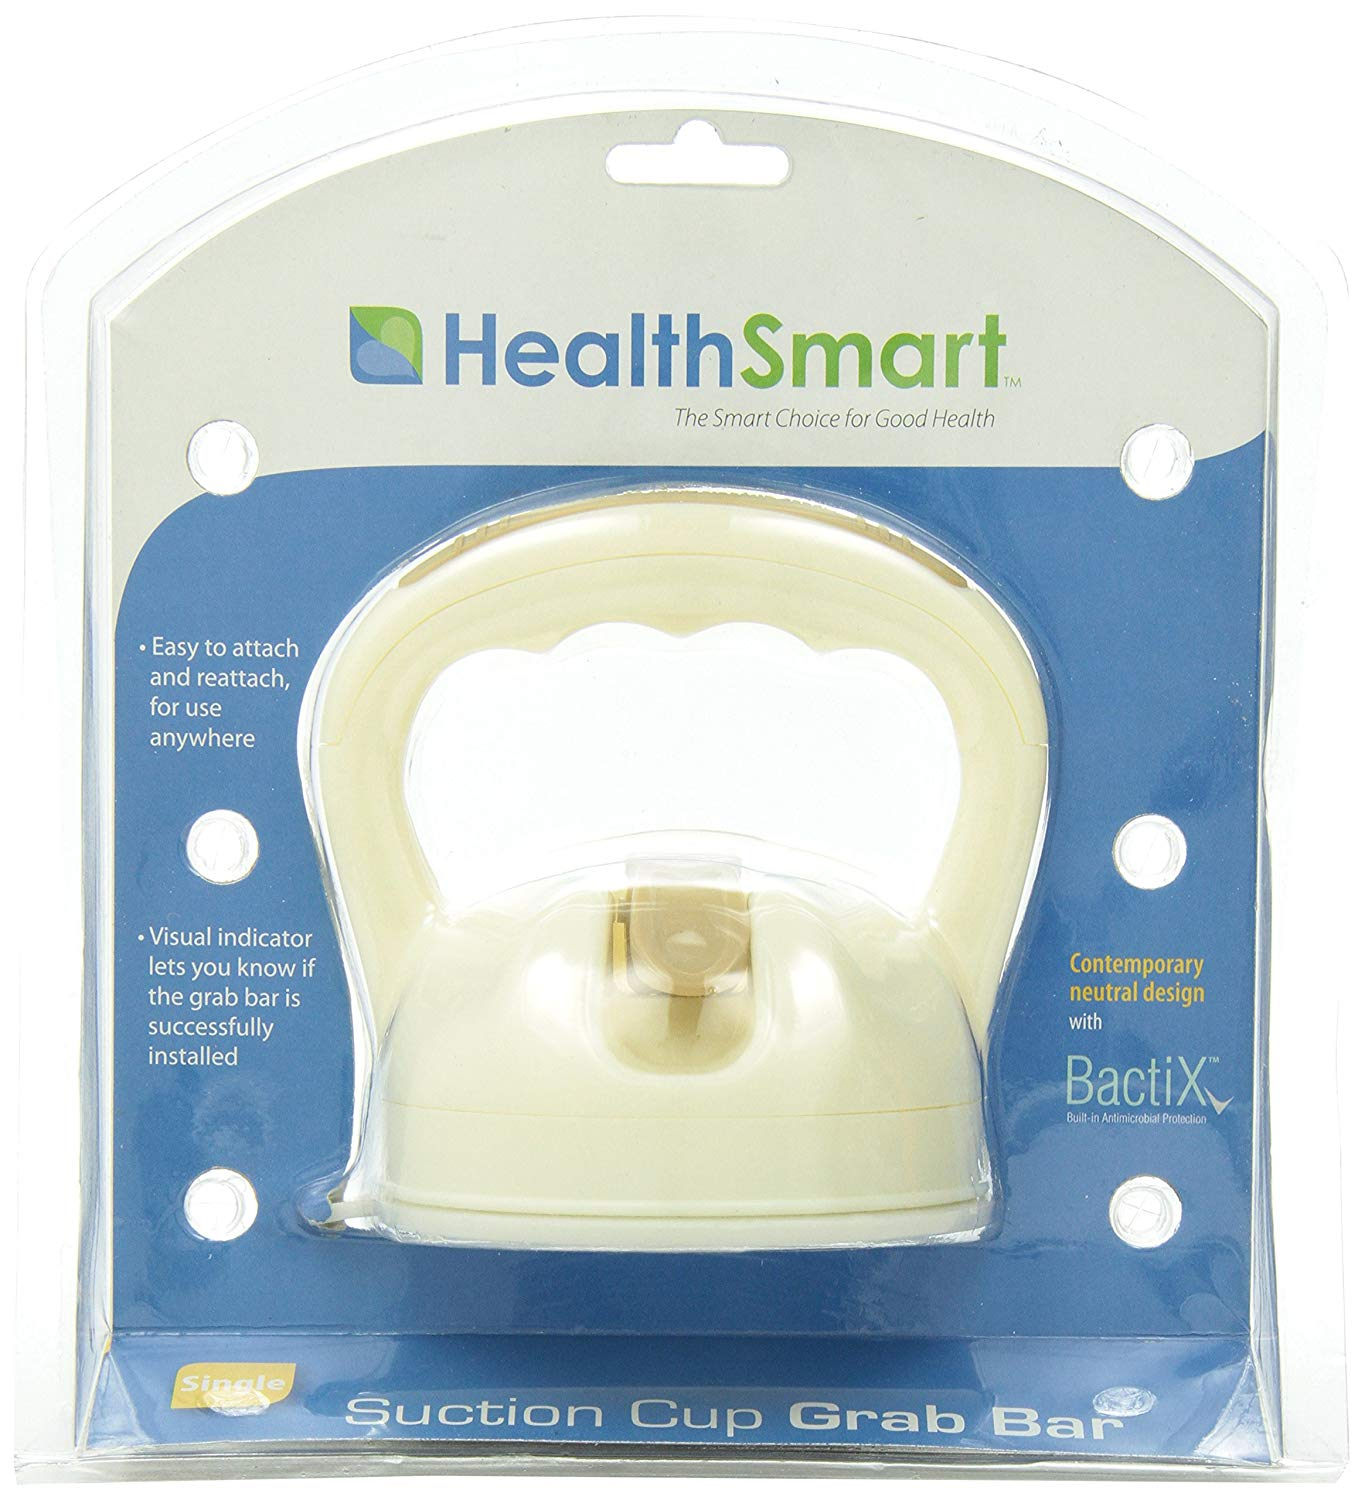 HealthSmart Suction Cup Grab Bars with Germ-Free Protection - Sand 4 Inch